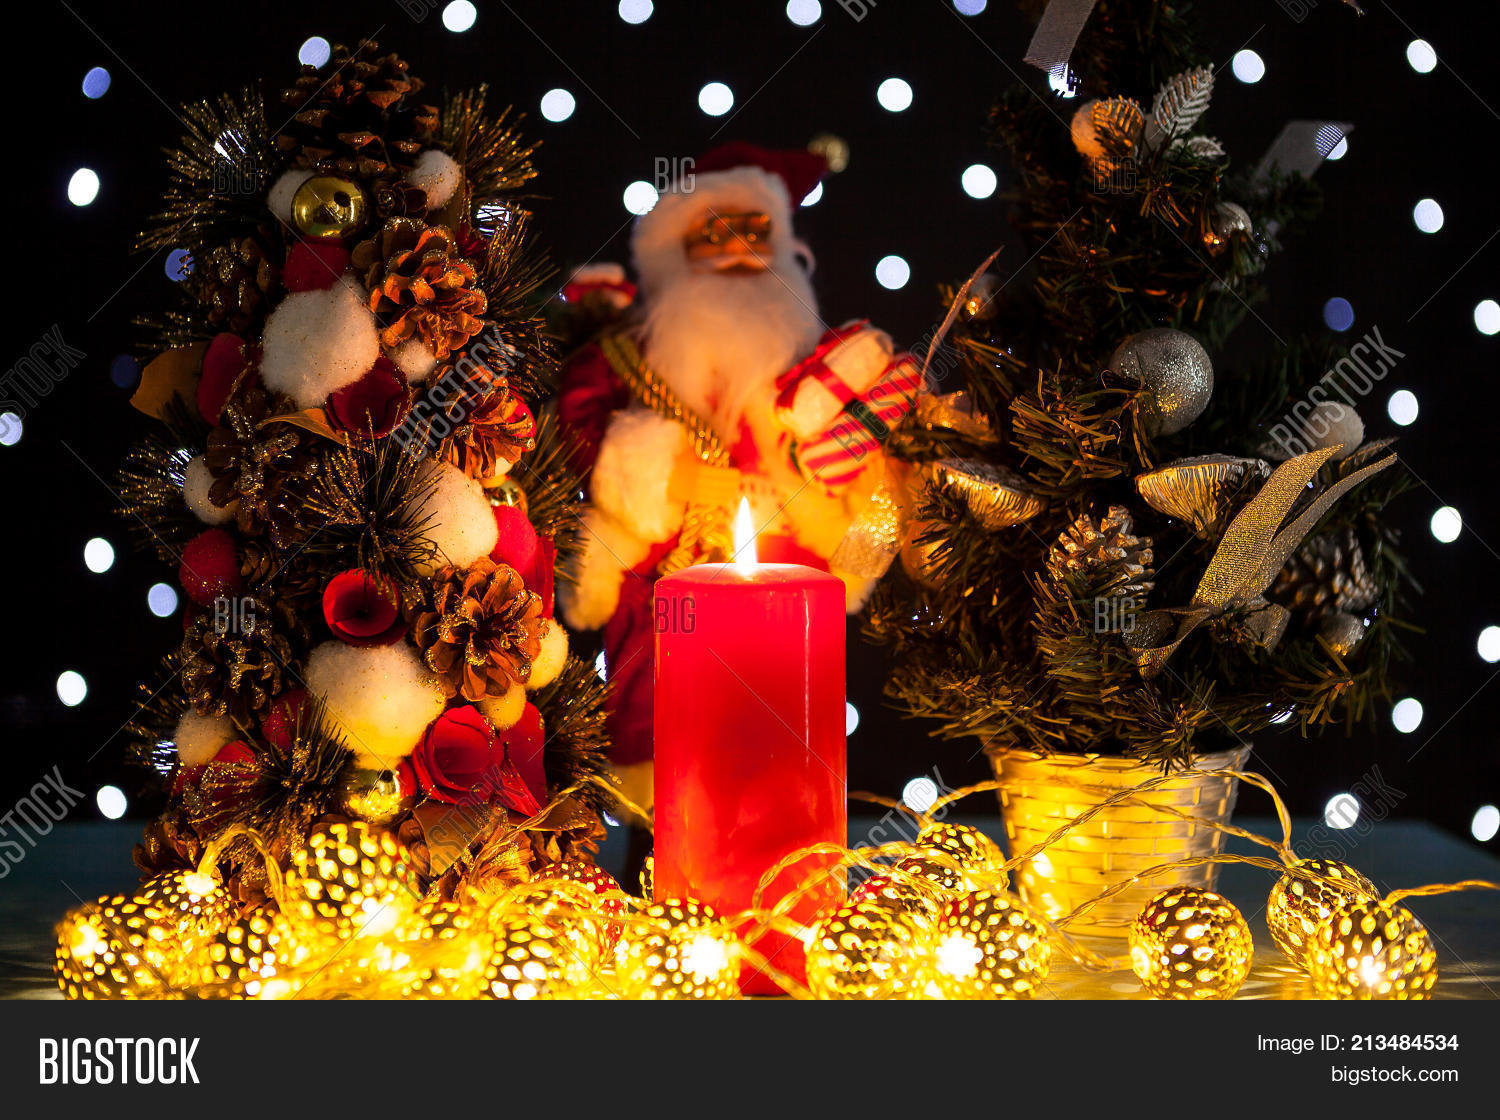 Two Mini Christmas Trees And A Santa Claus Figurine On Black Background With Bokeh Lights On